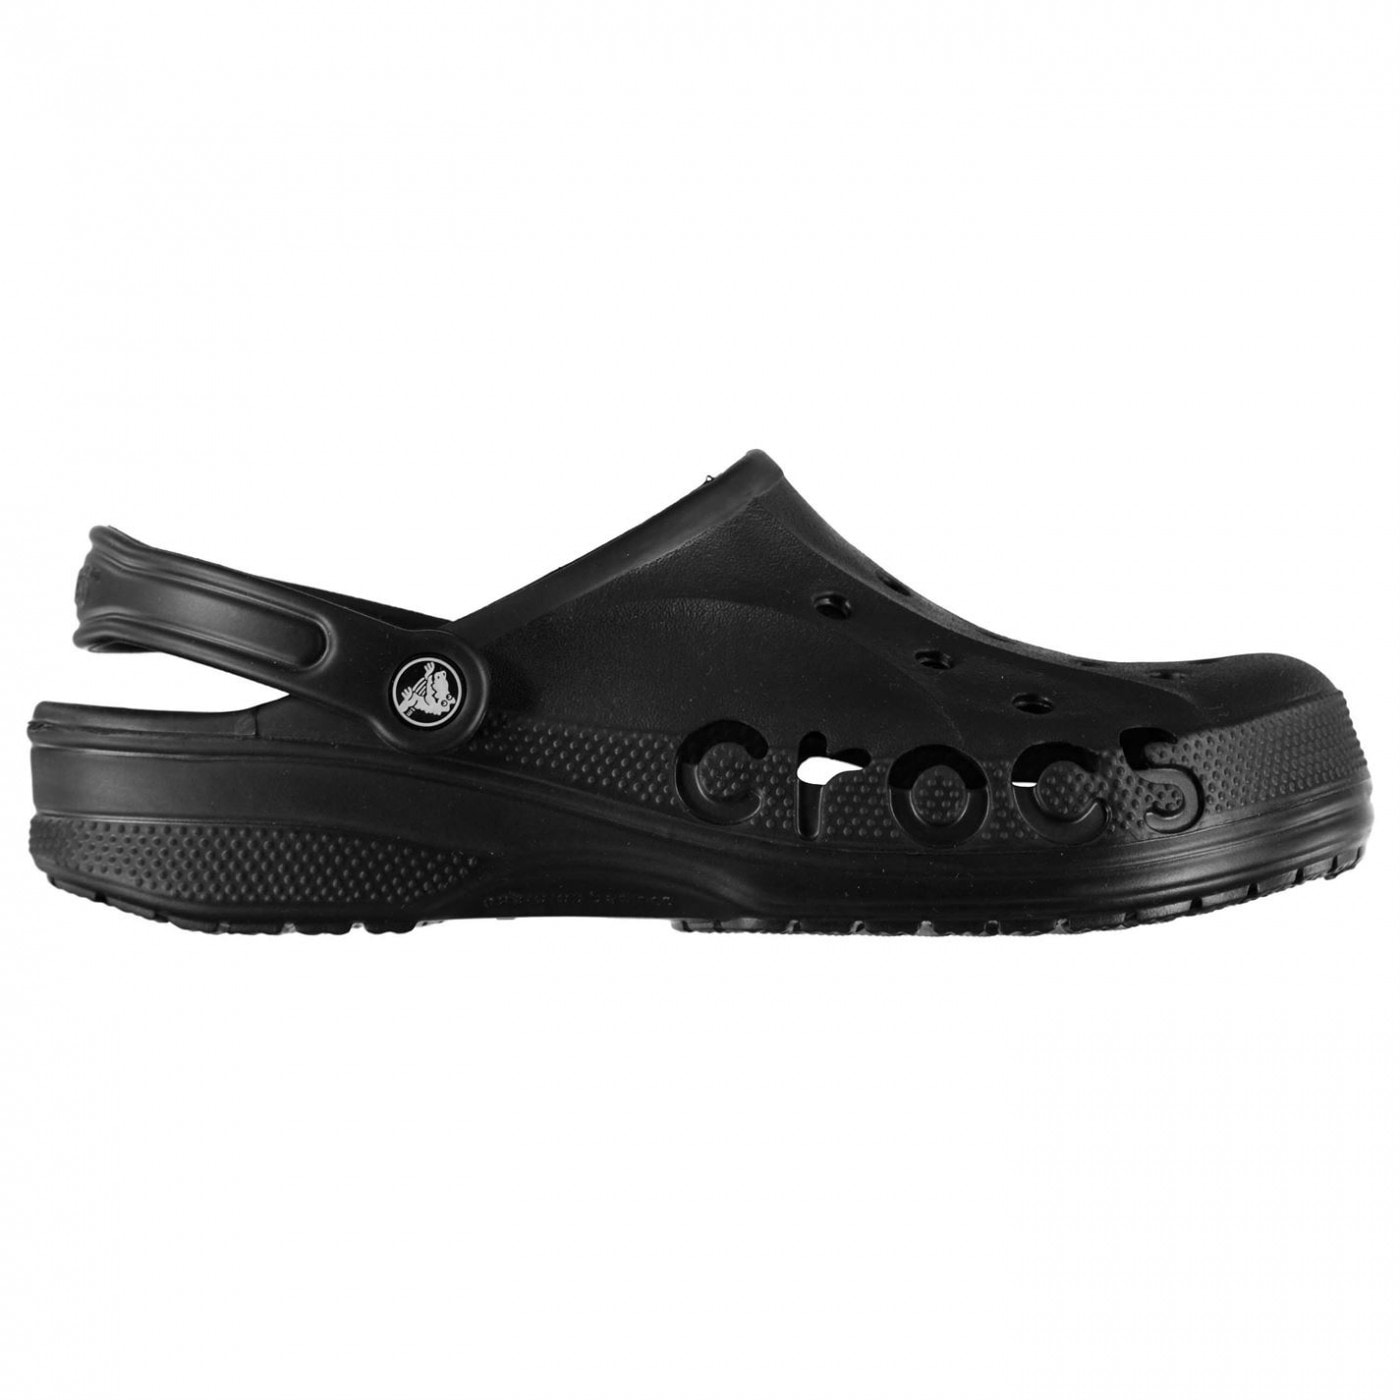 Crocs Baya Sandals Mens